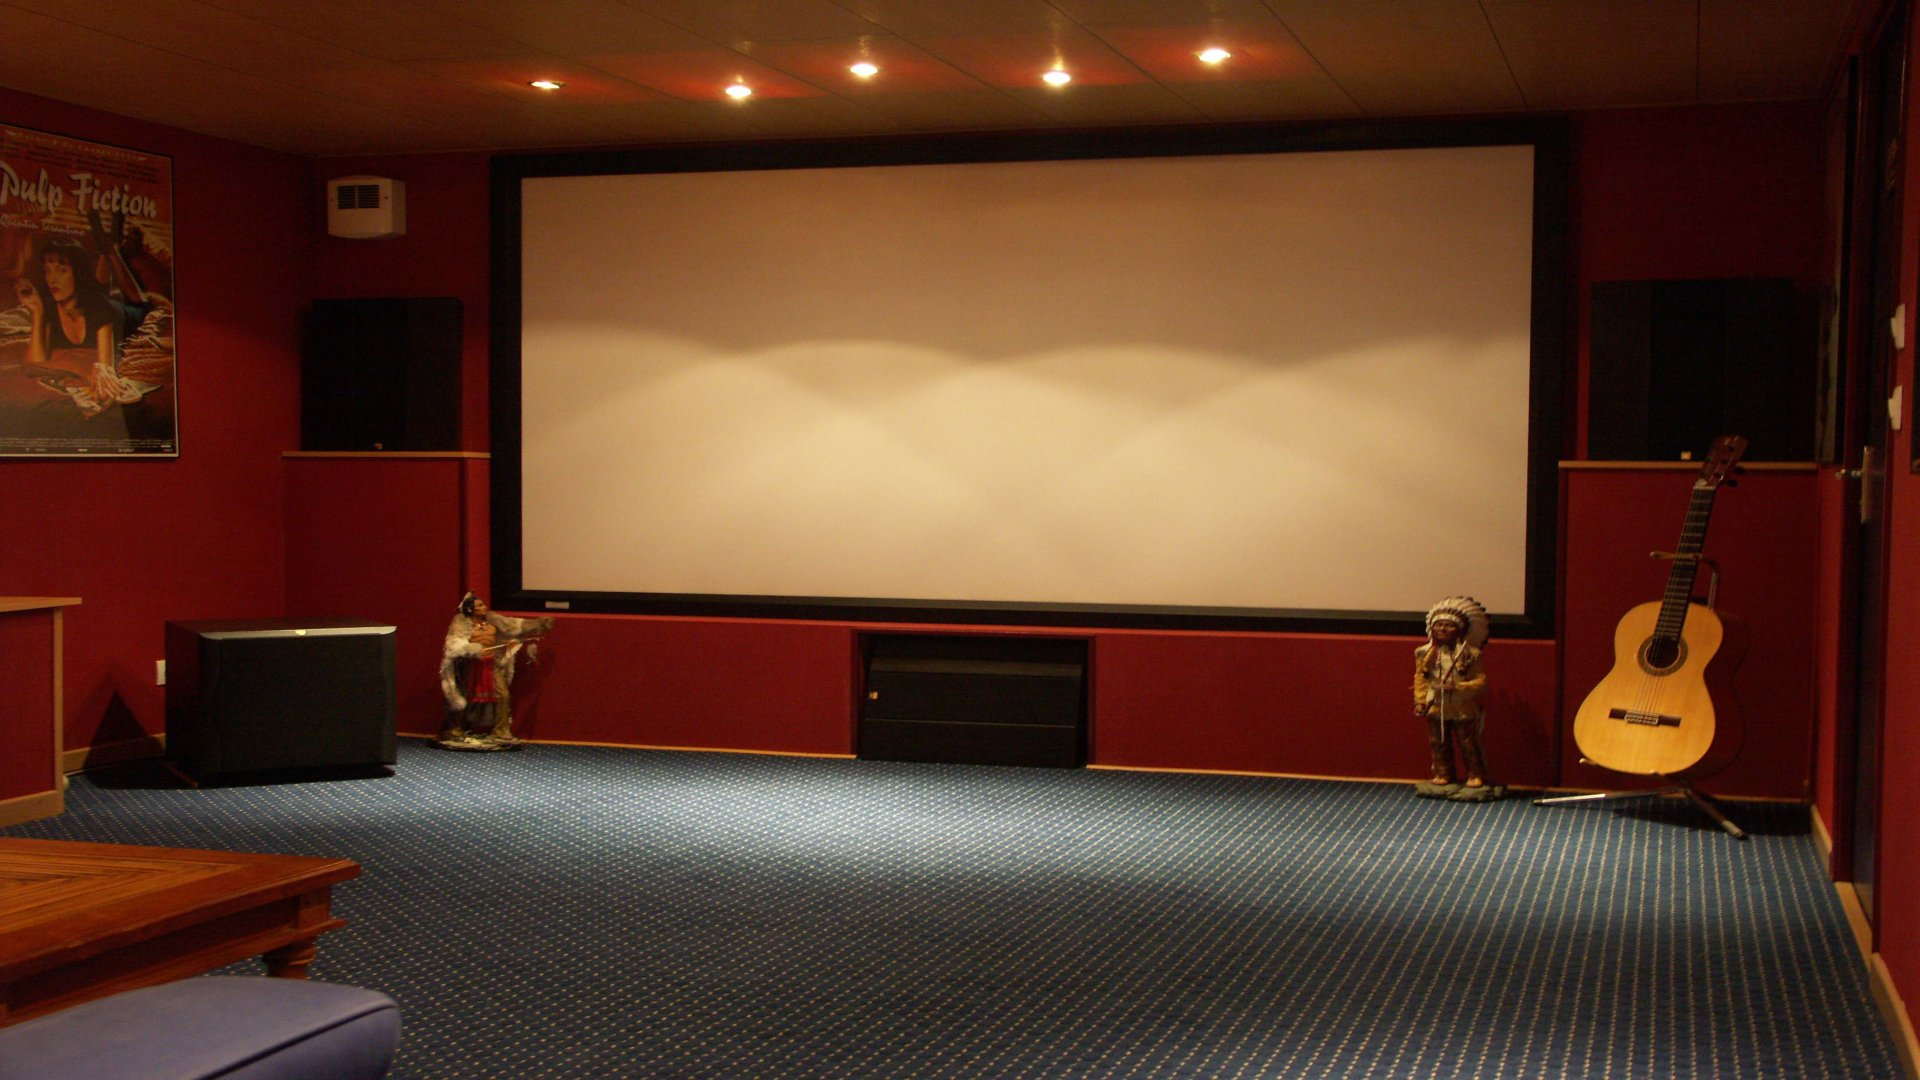 Home theater wallpaper wallpapersafari for Wallpaper home cinema